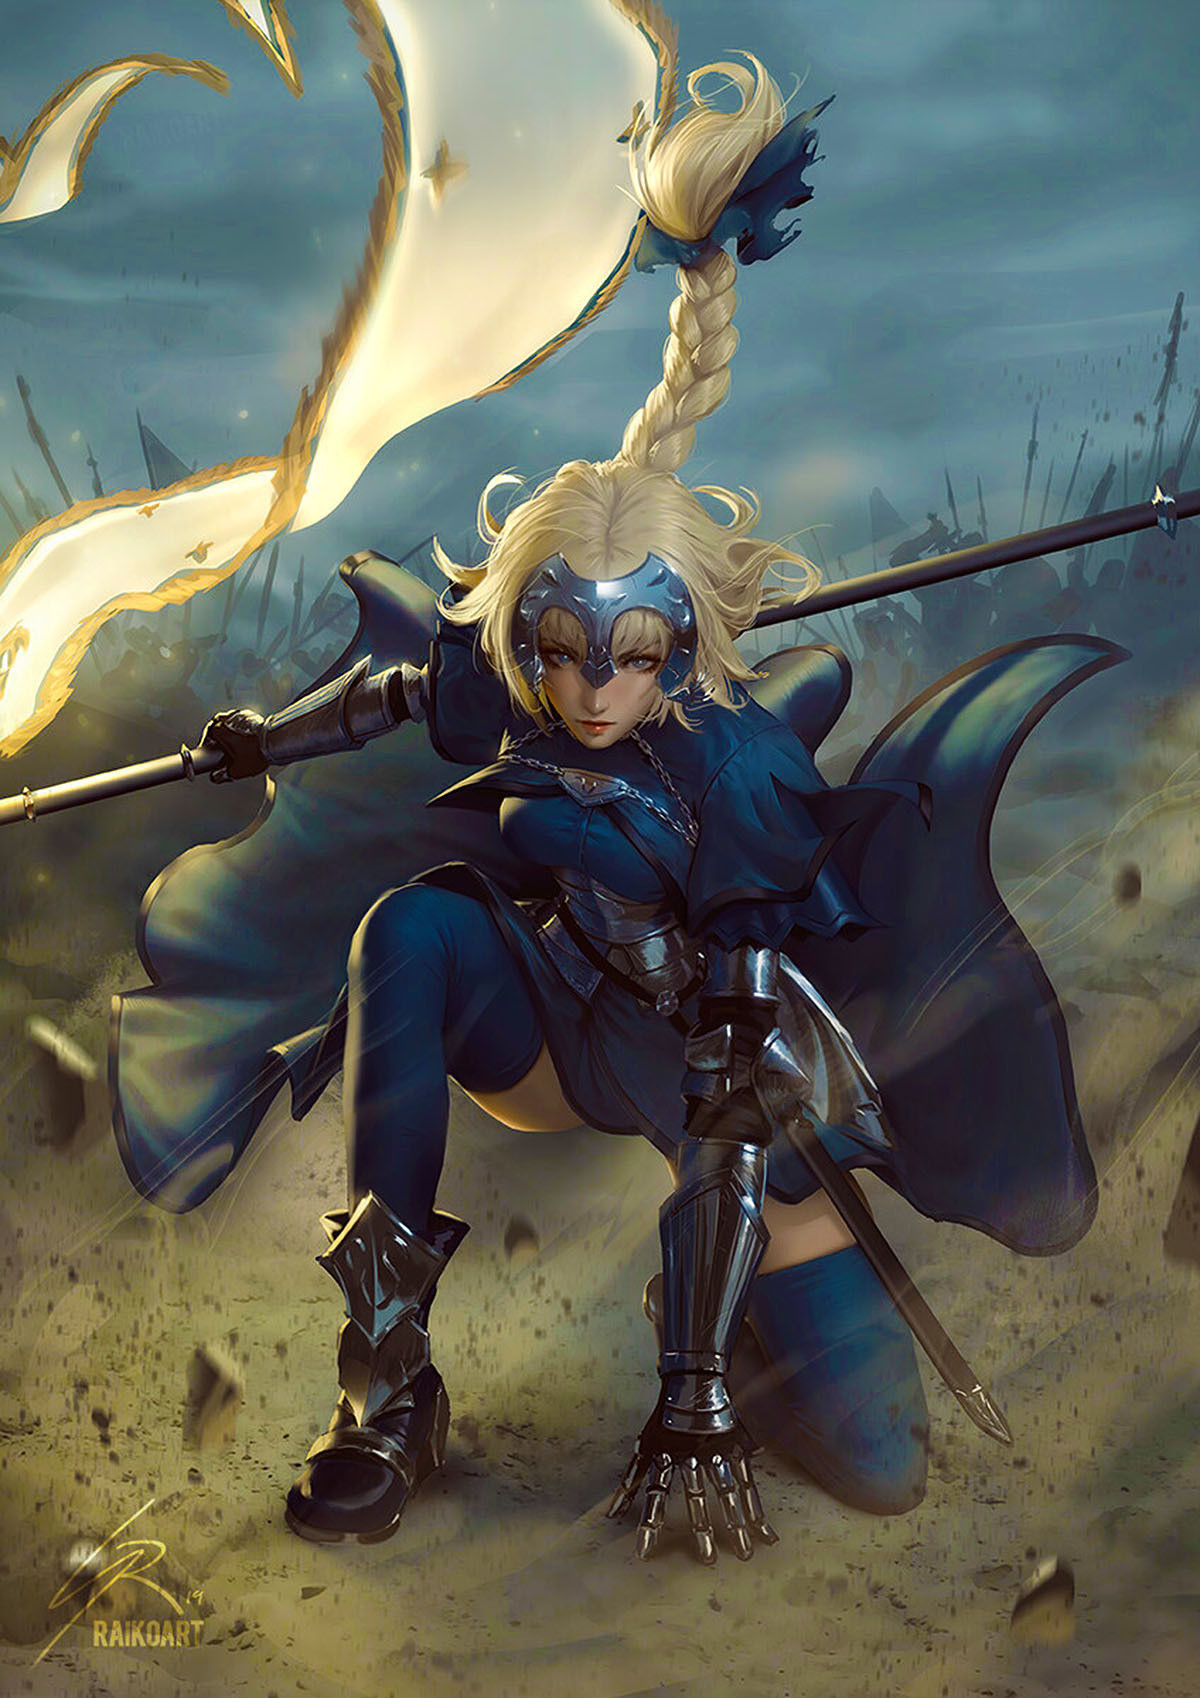 Jeanne D'Arc. .. Joan of Arc is the only French person I'd toast marshmallows with